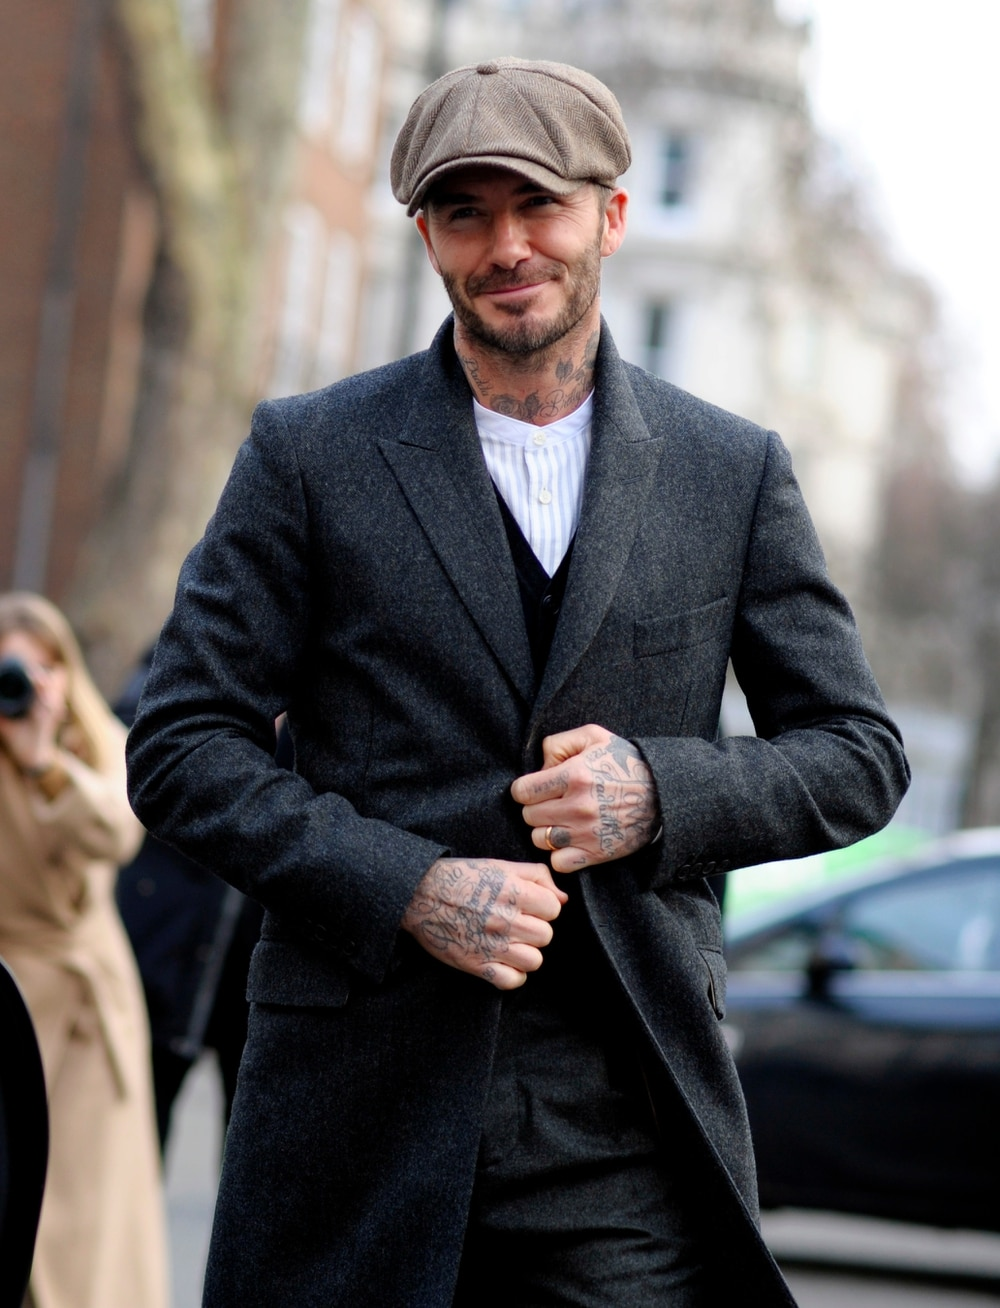 57cd74d4 David Beckham complete with flat cap during London Fashion Week. Photo by  Wayne Tippetts/REX/Shutterstock